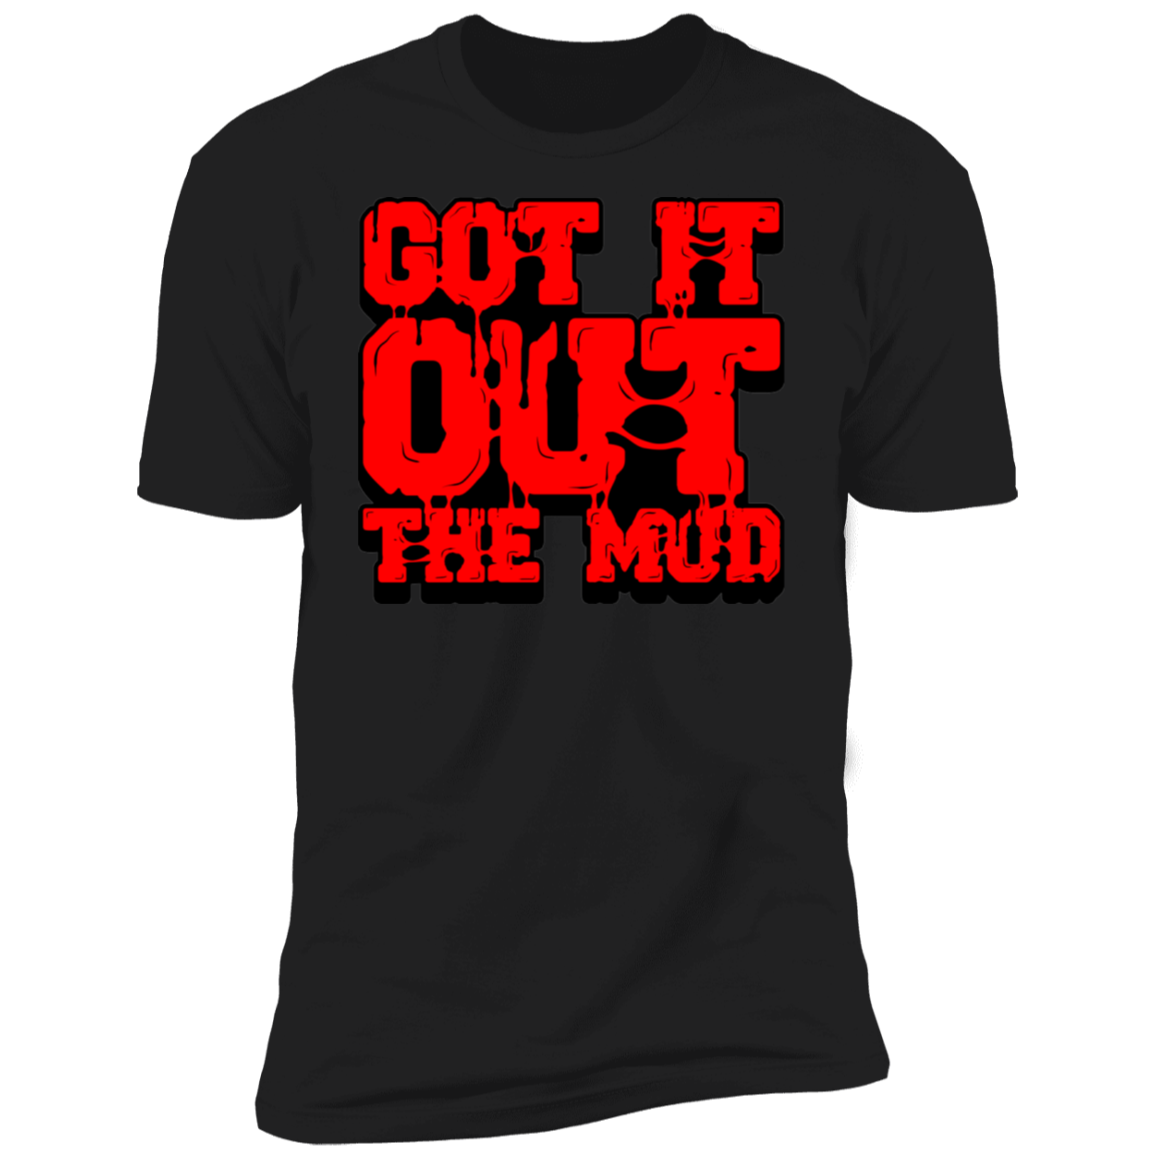 N2me Mud Short Sleeve T-Shirt